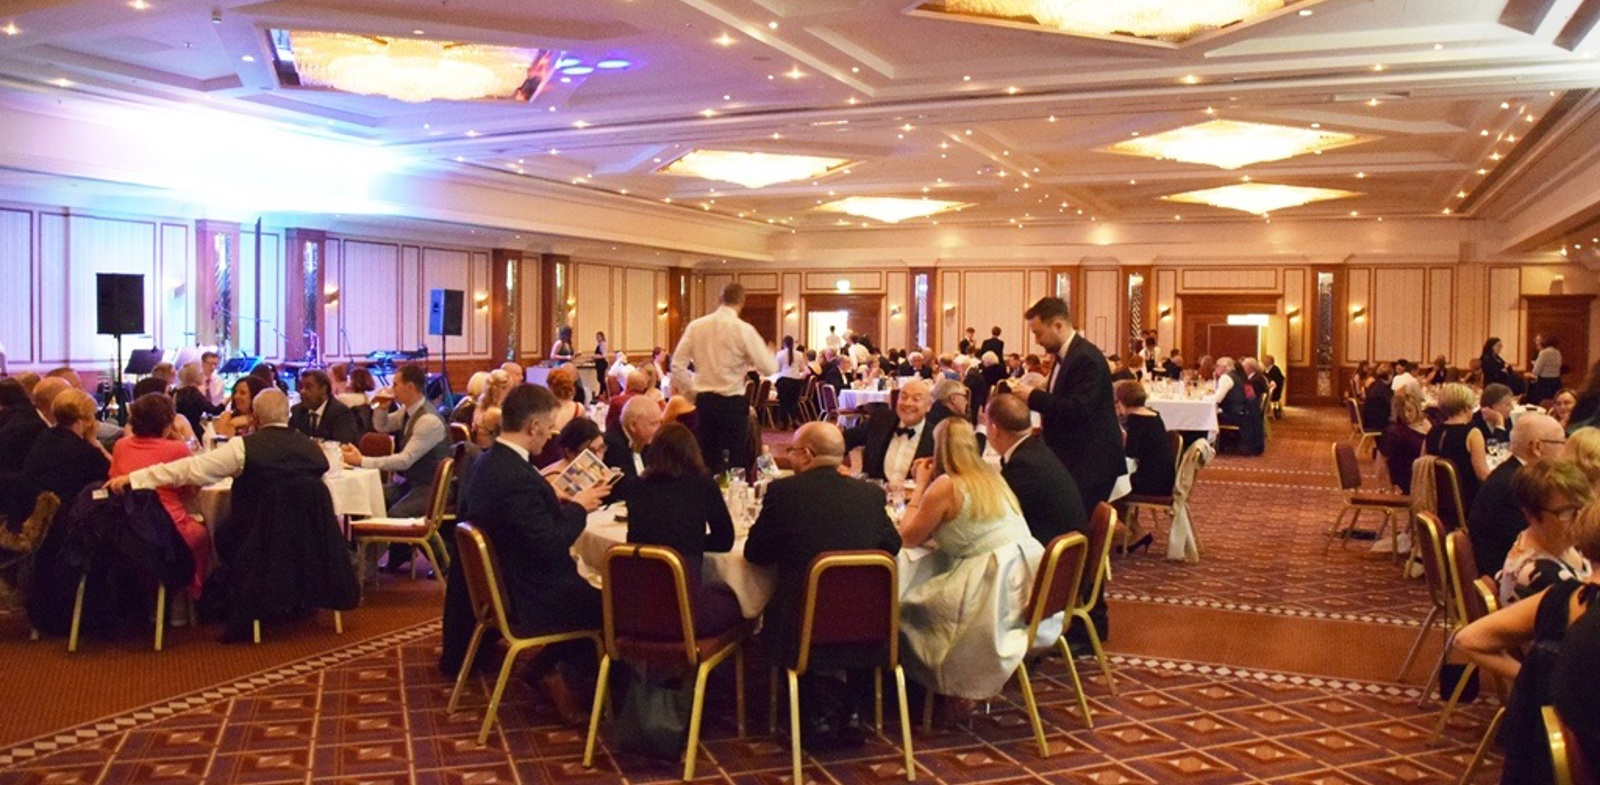 Dinner, dancing and donations at Fundraising Ball